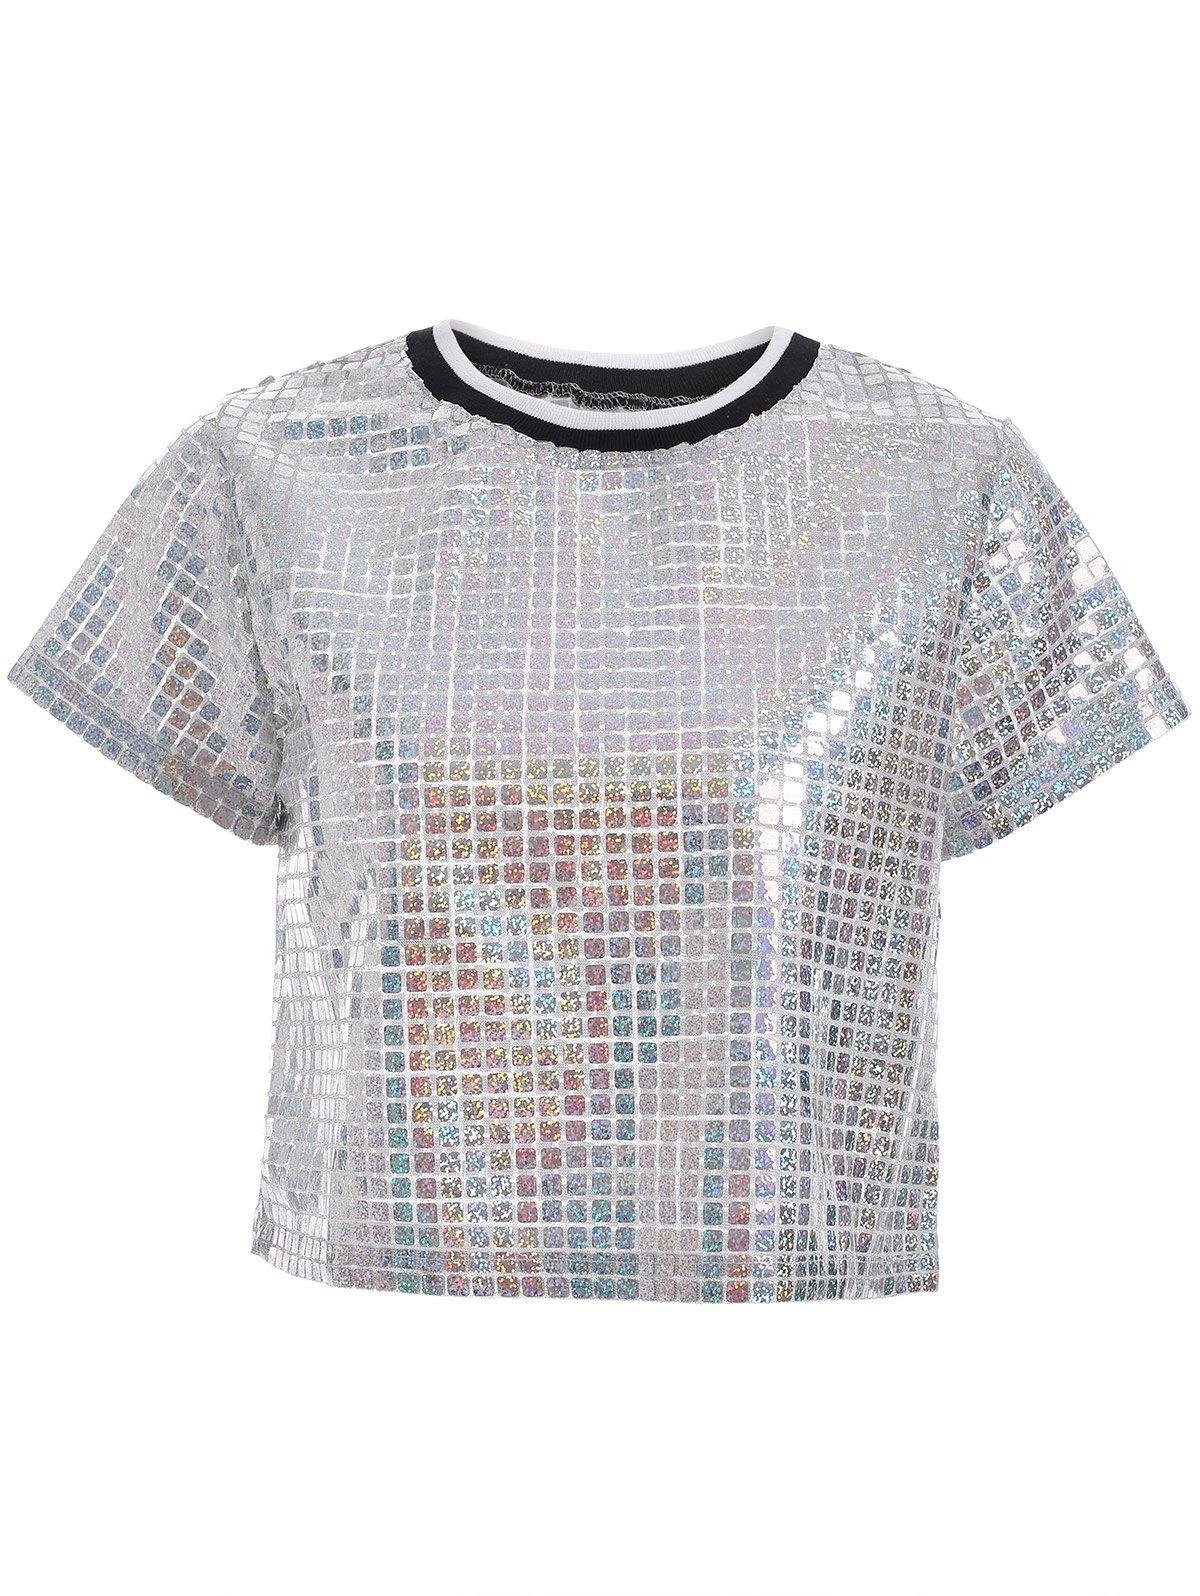 Vintage Silver Color Glitter Plaid Crop Top - SILVER XL